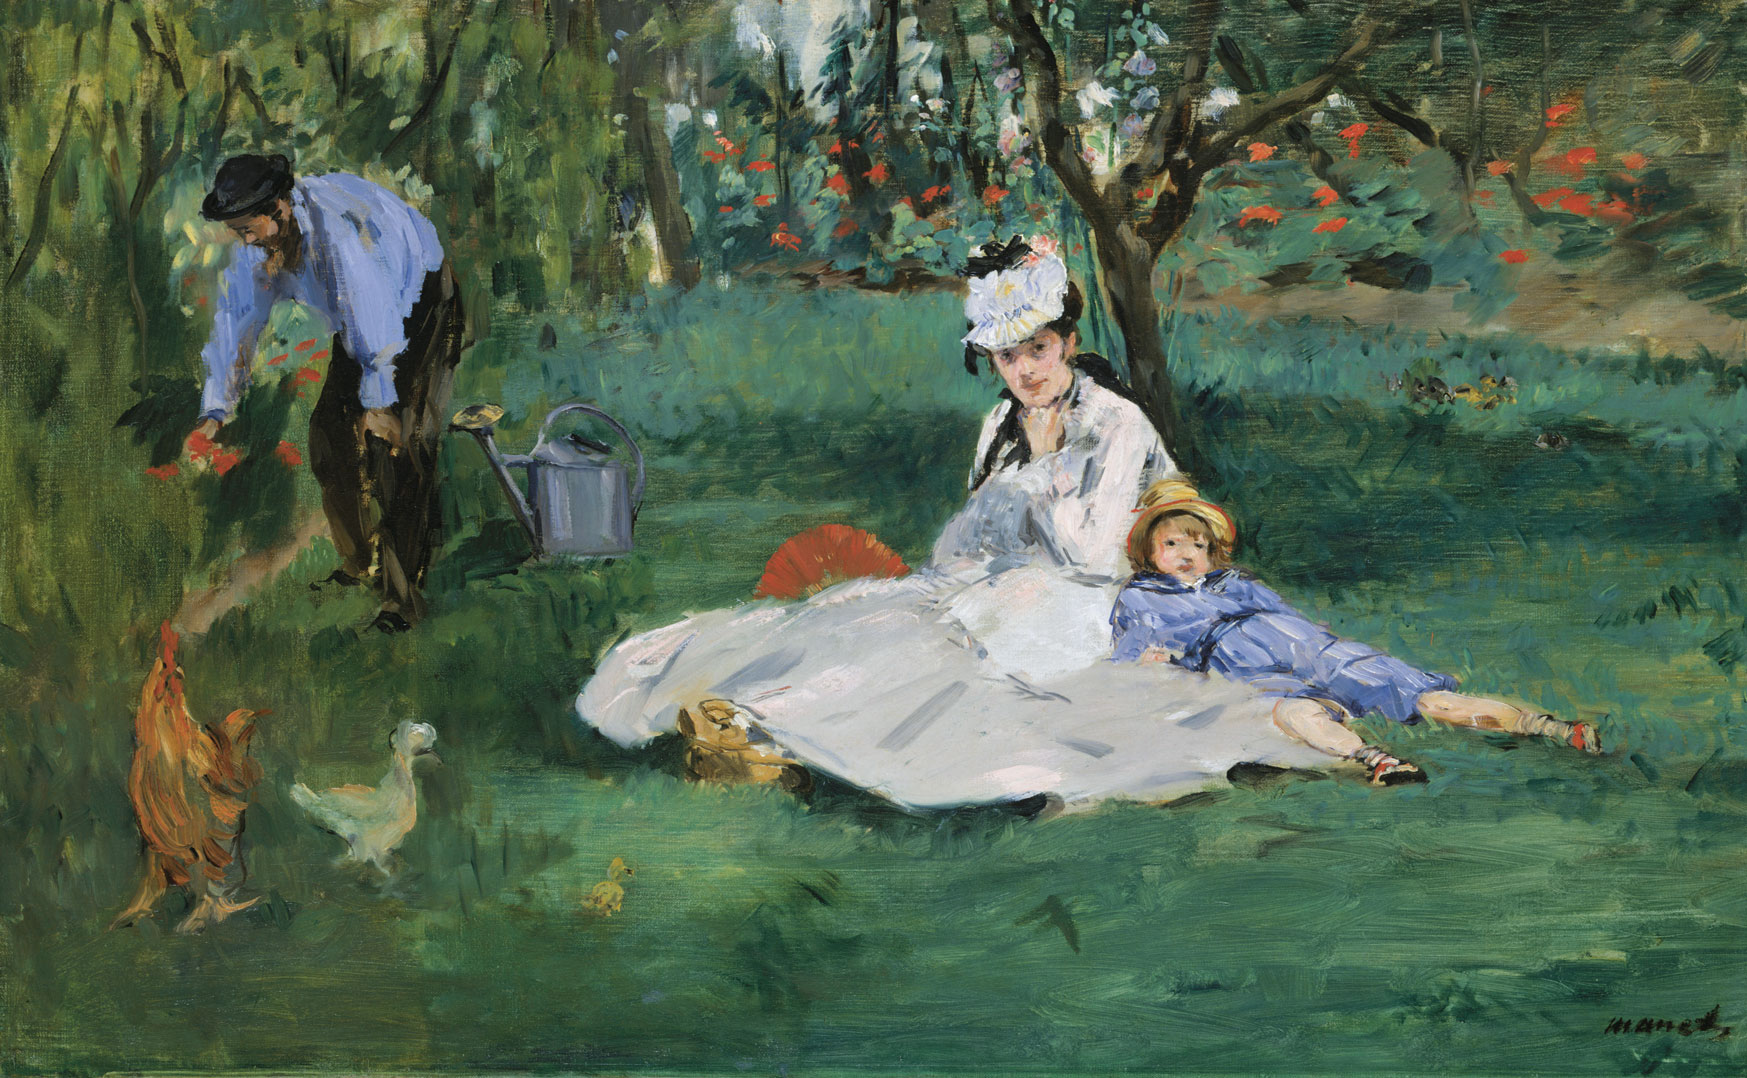 Lots of women and children, obviously, but there is one lovely little Impressionist painting by Manet of the Monet family in their garden. From Art =